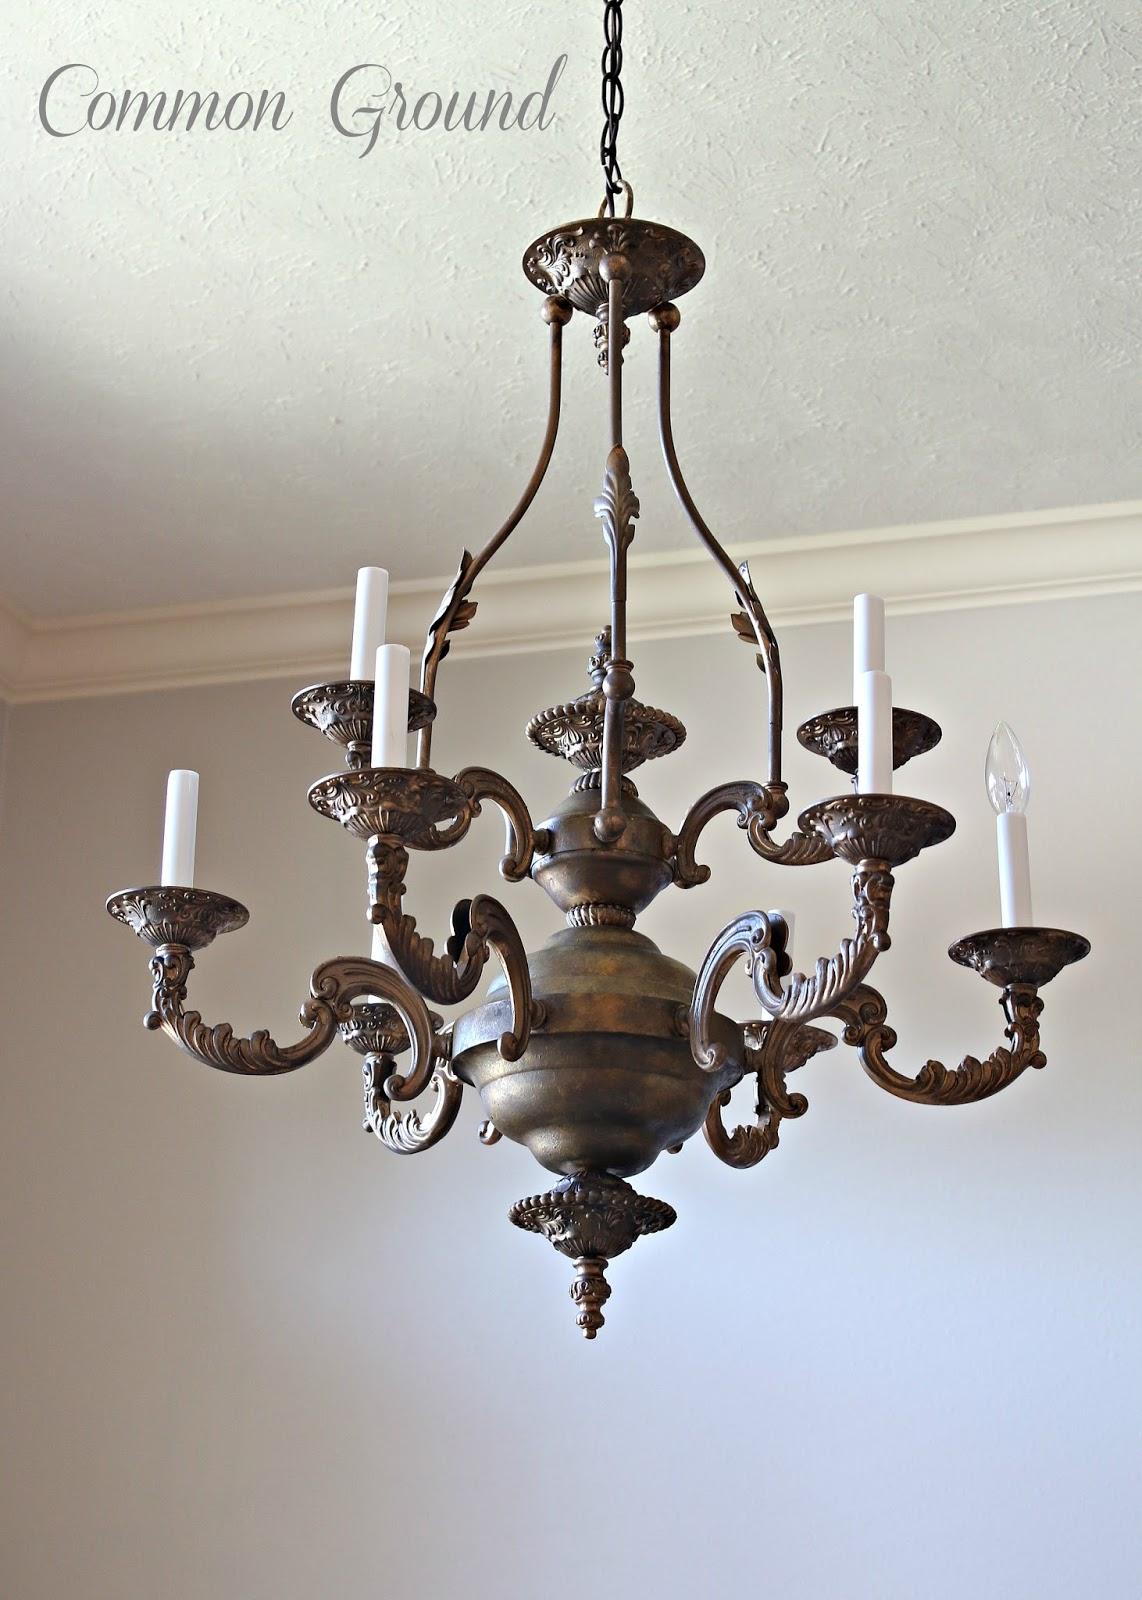 Awesome mon ground Faux Painted Chandelier